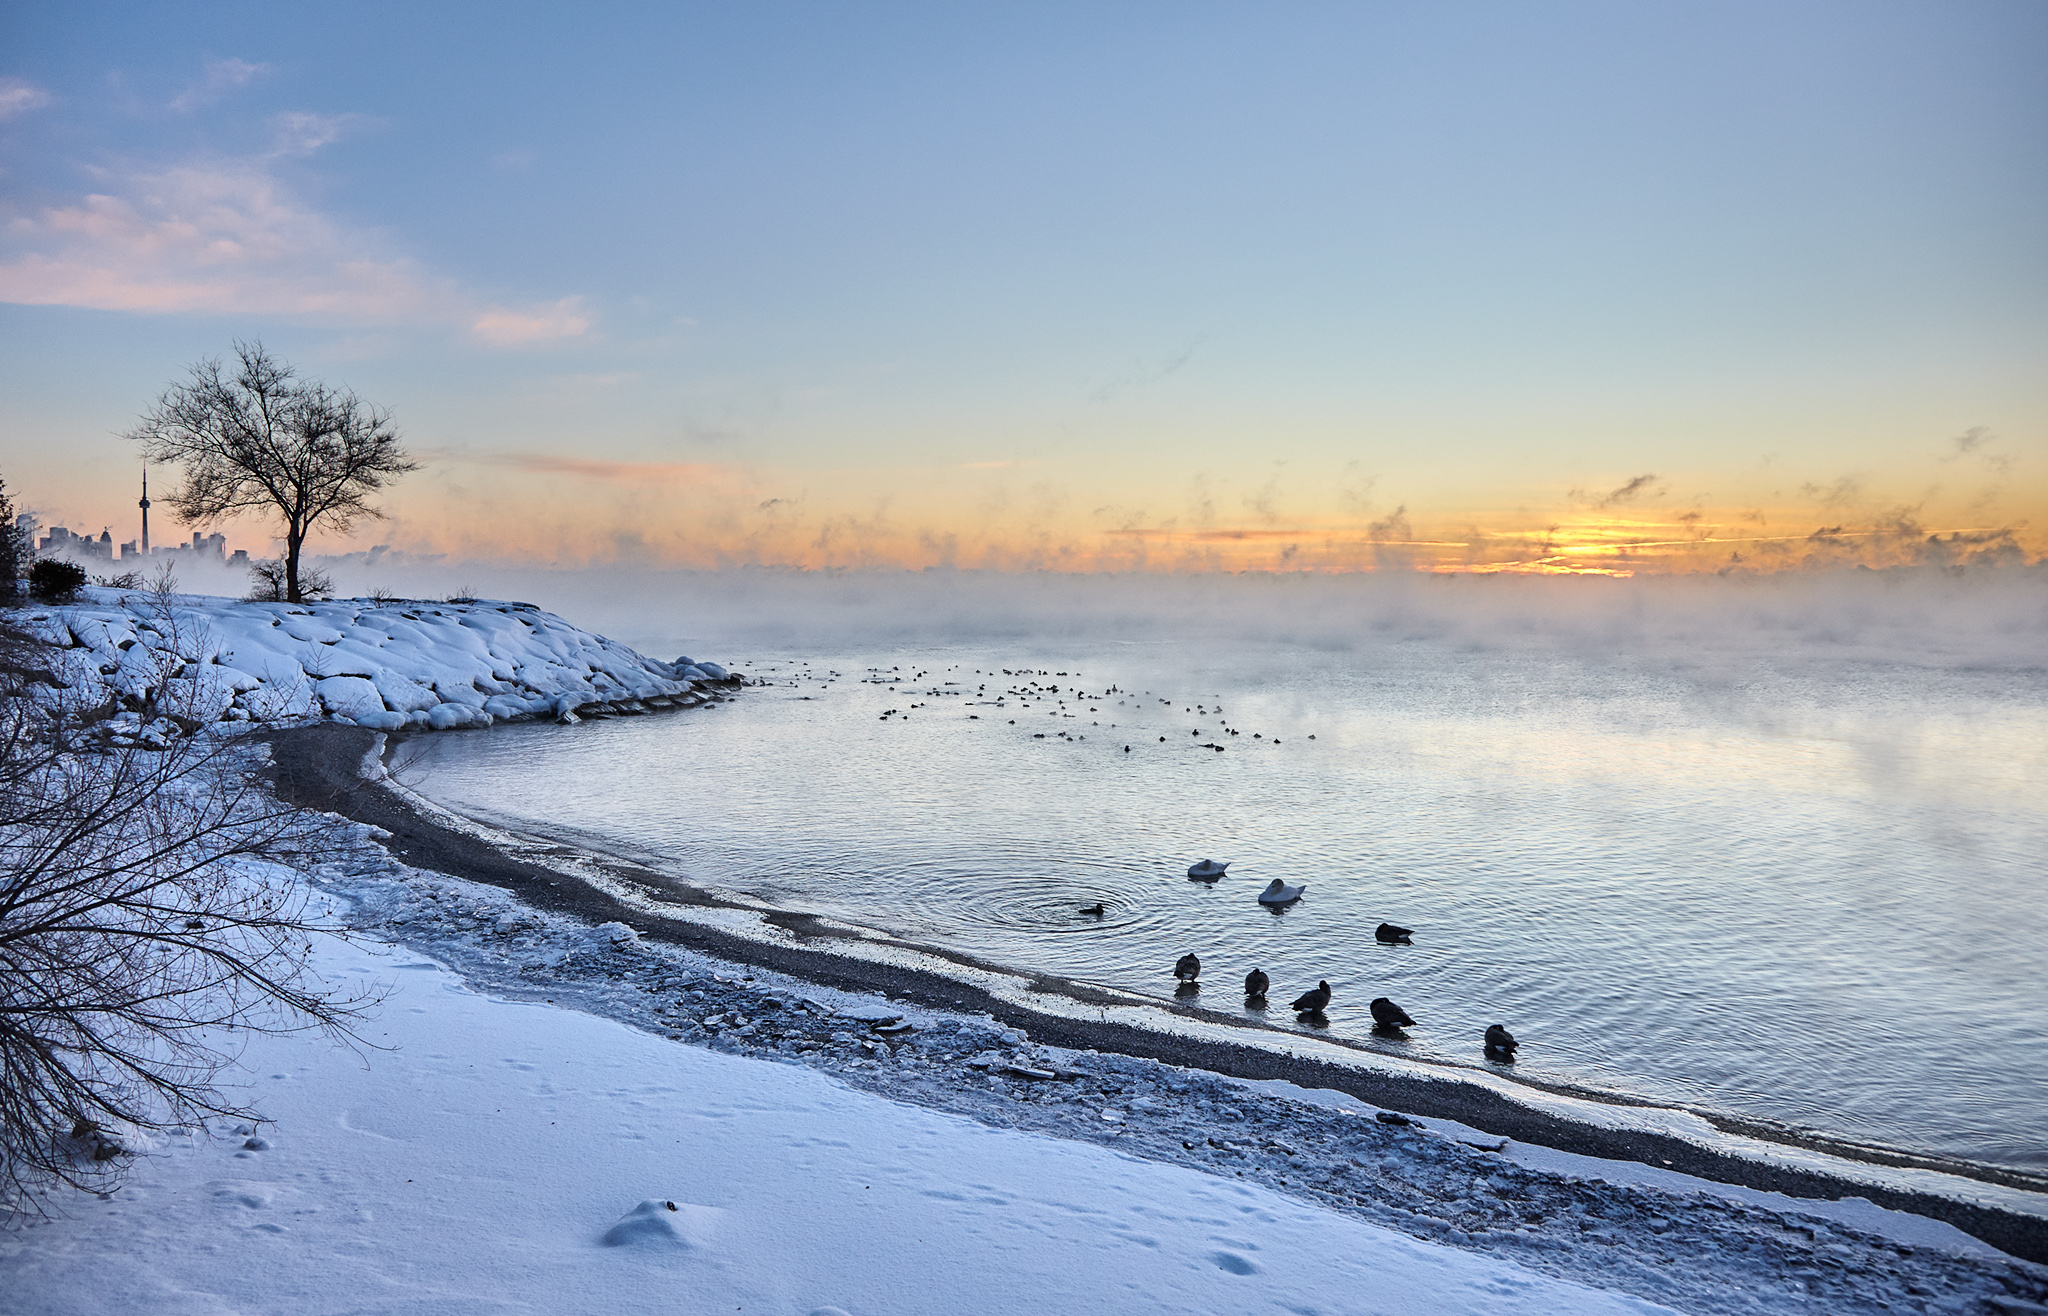 humber-bay_park_snow_sunrise_cn-tower_ducks_beach_01.jpg